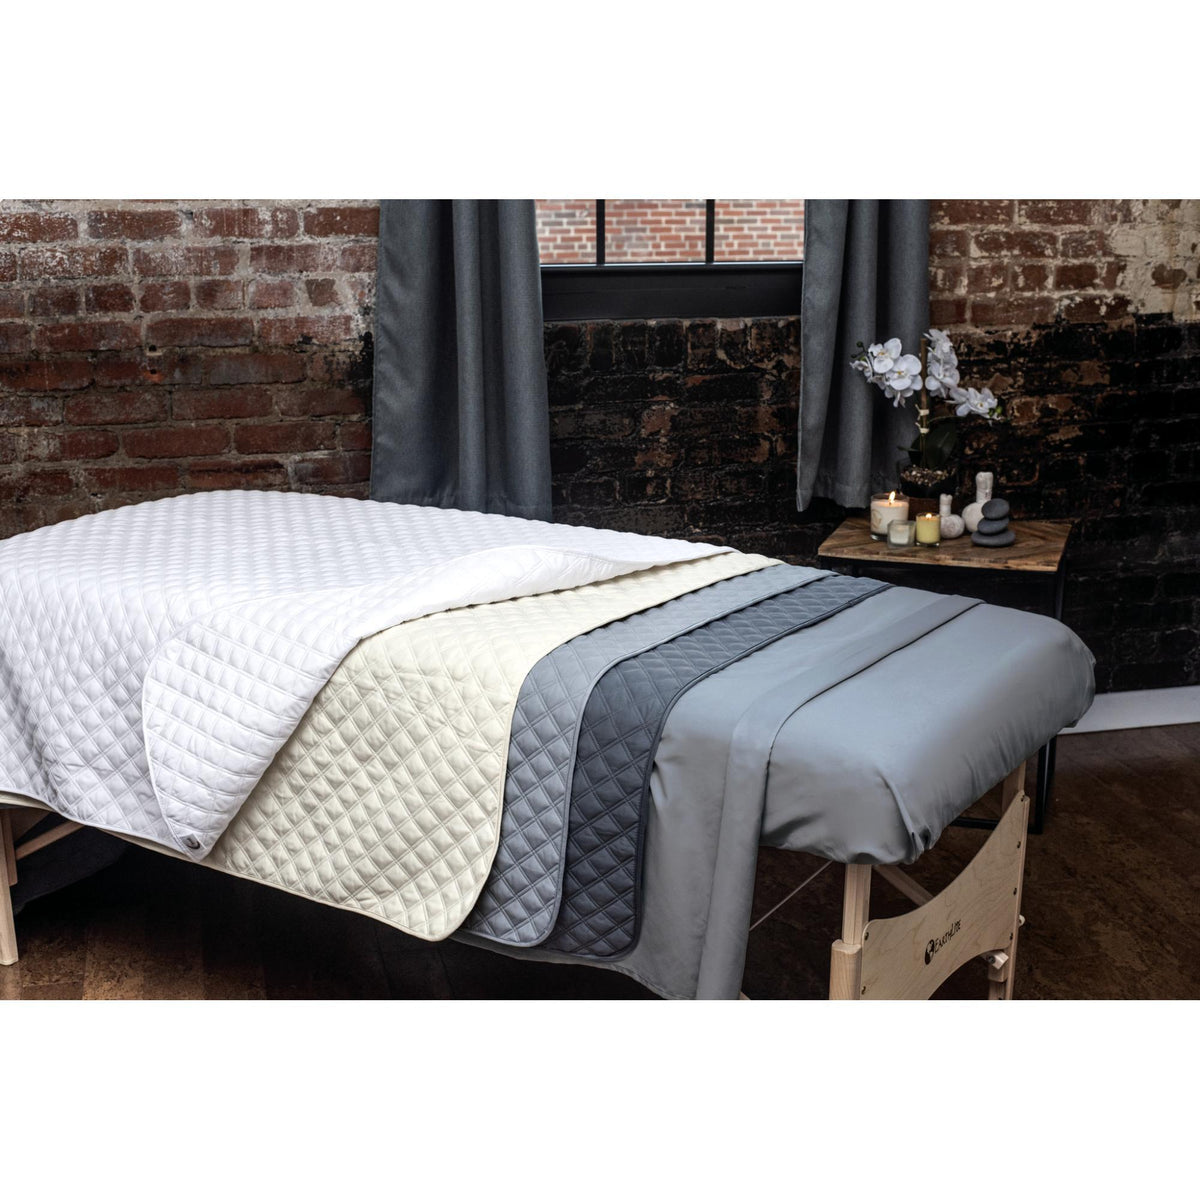 Sheets, Blankets & Accessories Sposh Urban Microfiber Quilted Blanket